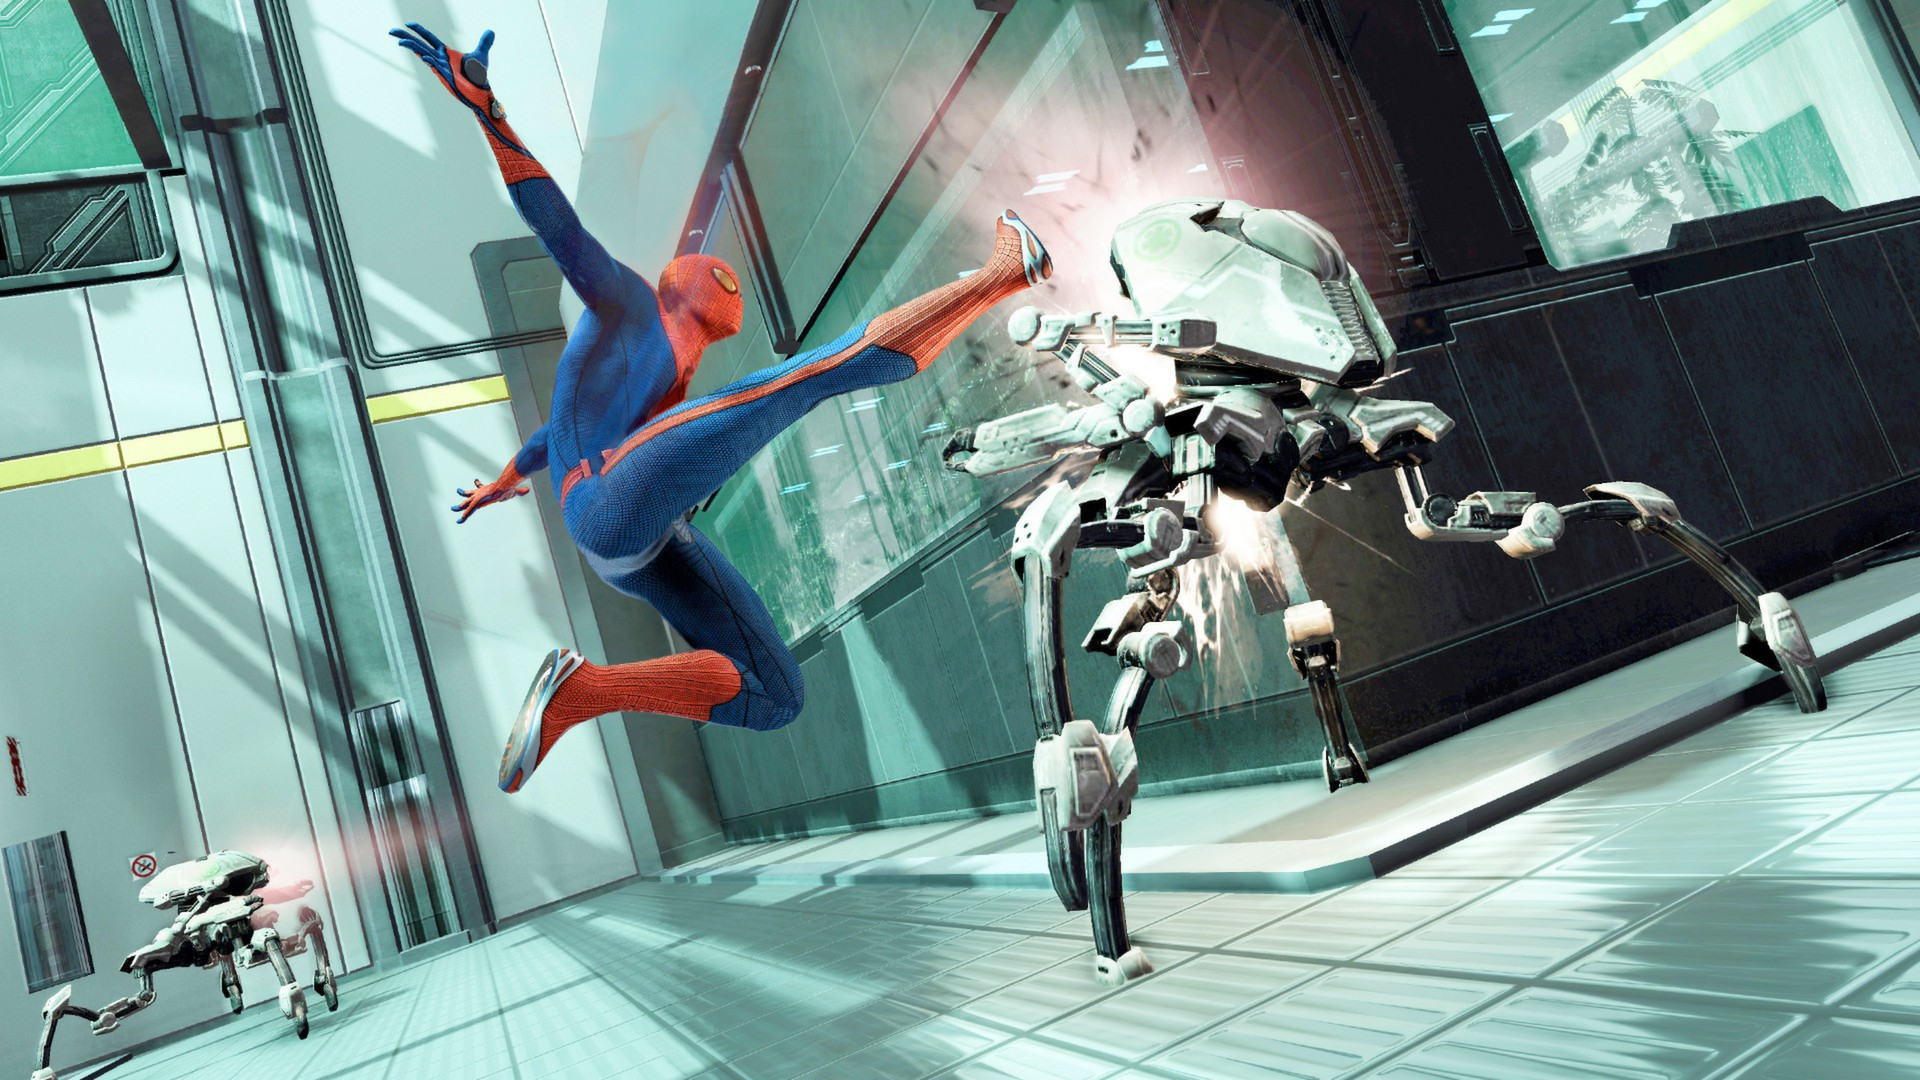 download the amazing spider man single link Reloaded – one ftp link – torrent the amazing spider-man 2 takes place  the amazing spider-man 2 takes place outside the  for windows 8, need to download.